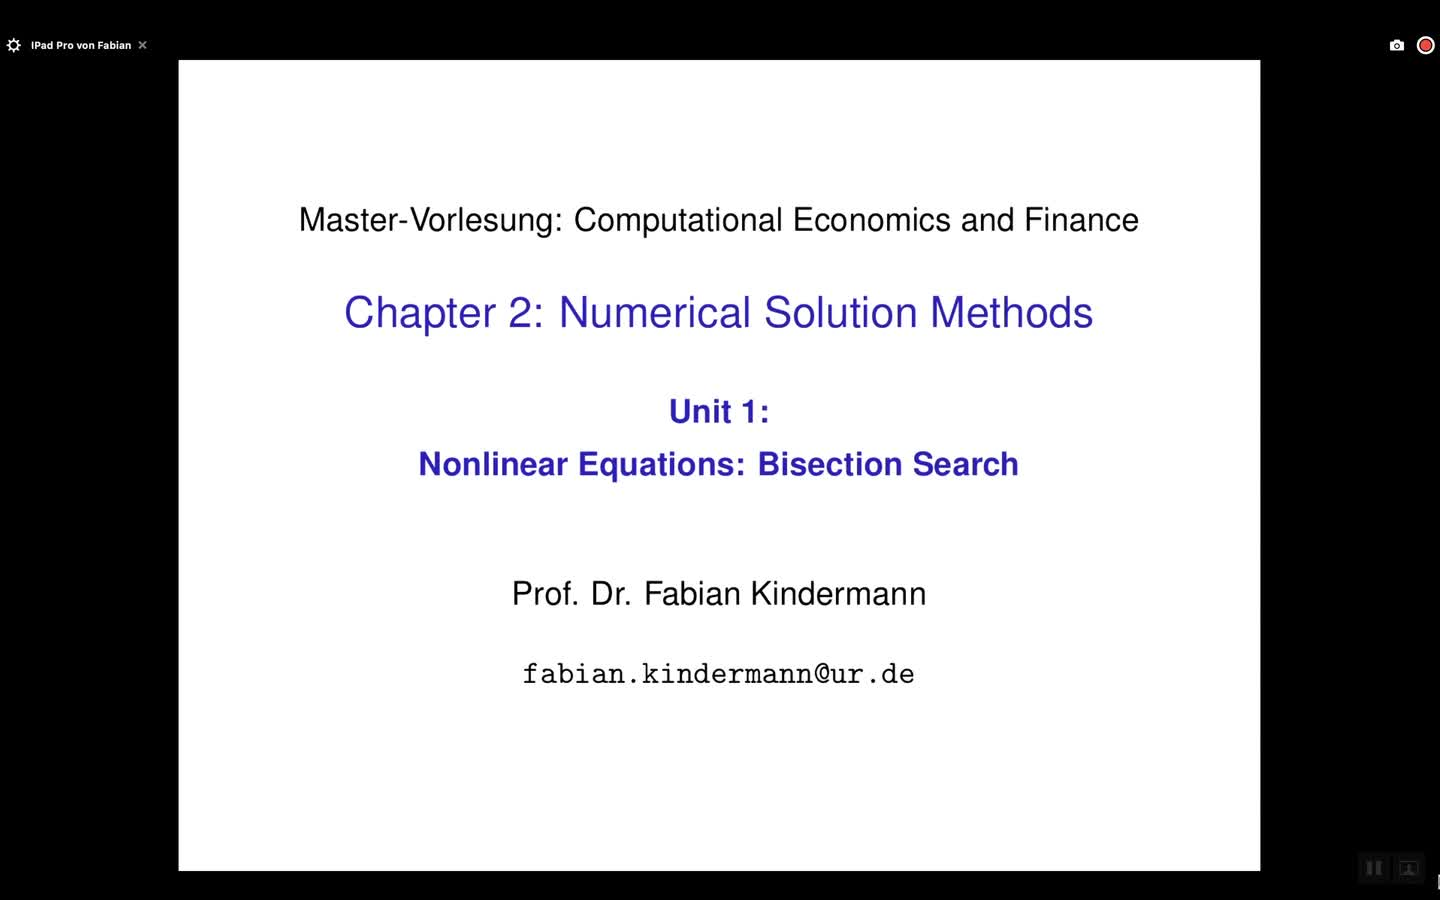 Chapter 2 - Unit 1 - Nonlinear Equations: Bisection Search